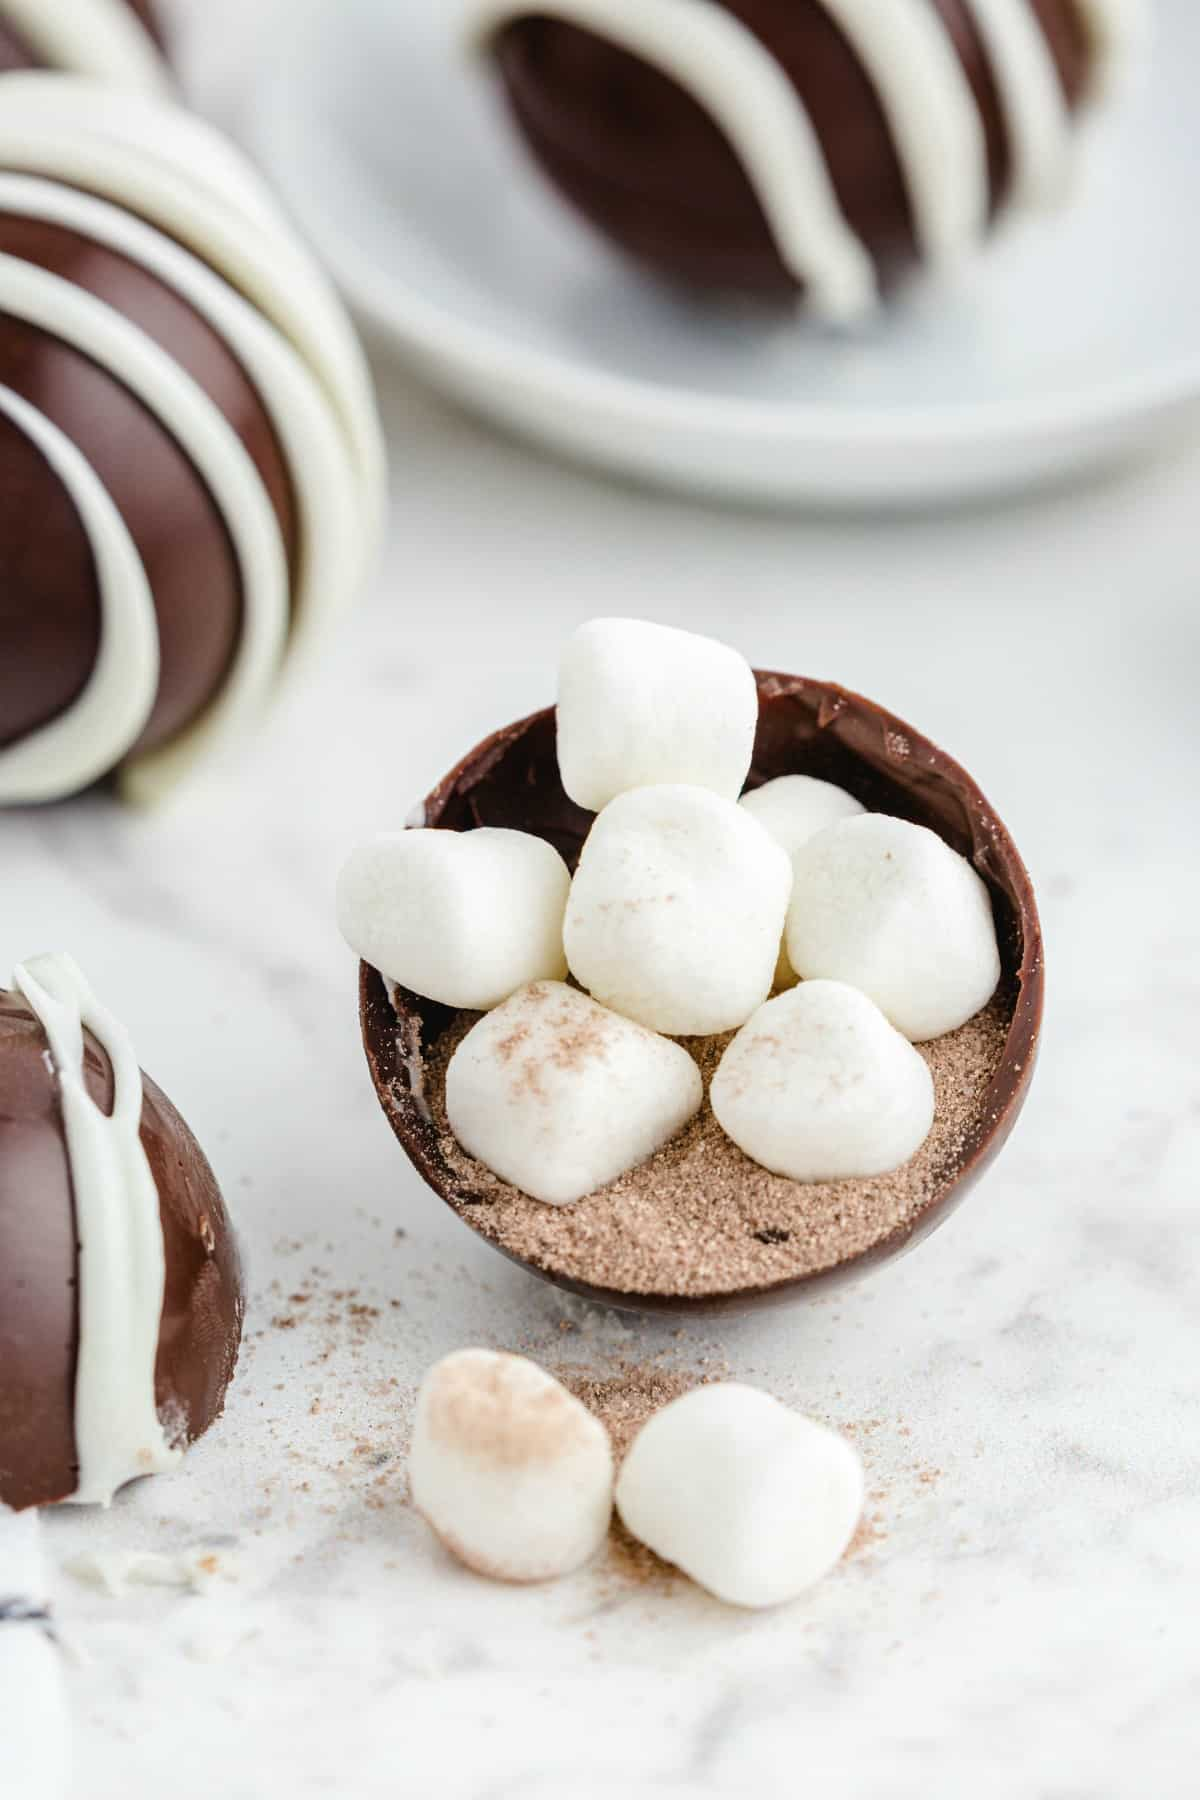 fill bomb with hot chocolate